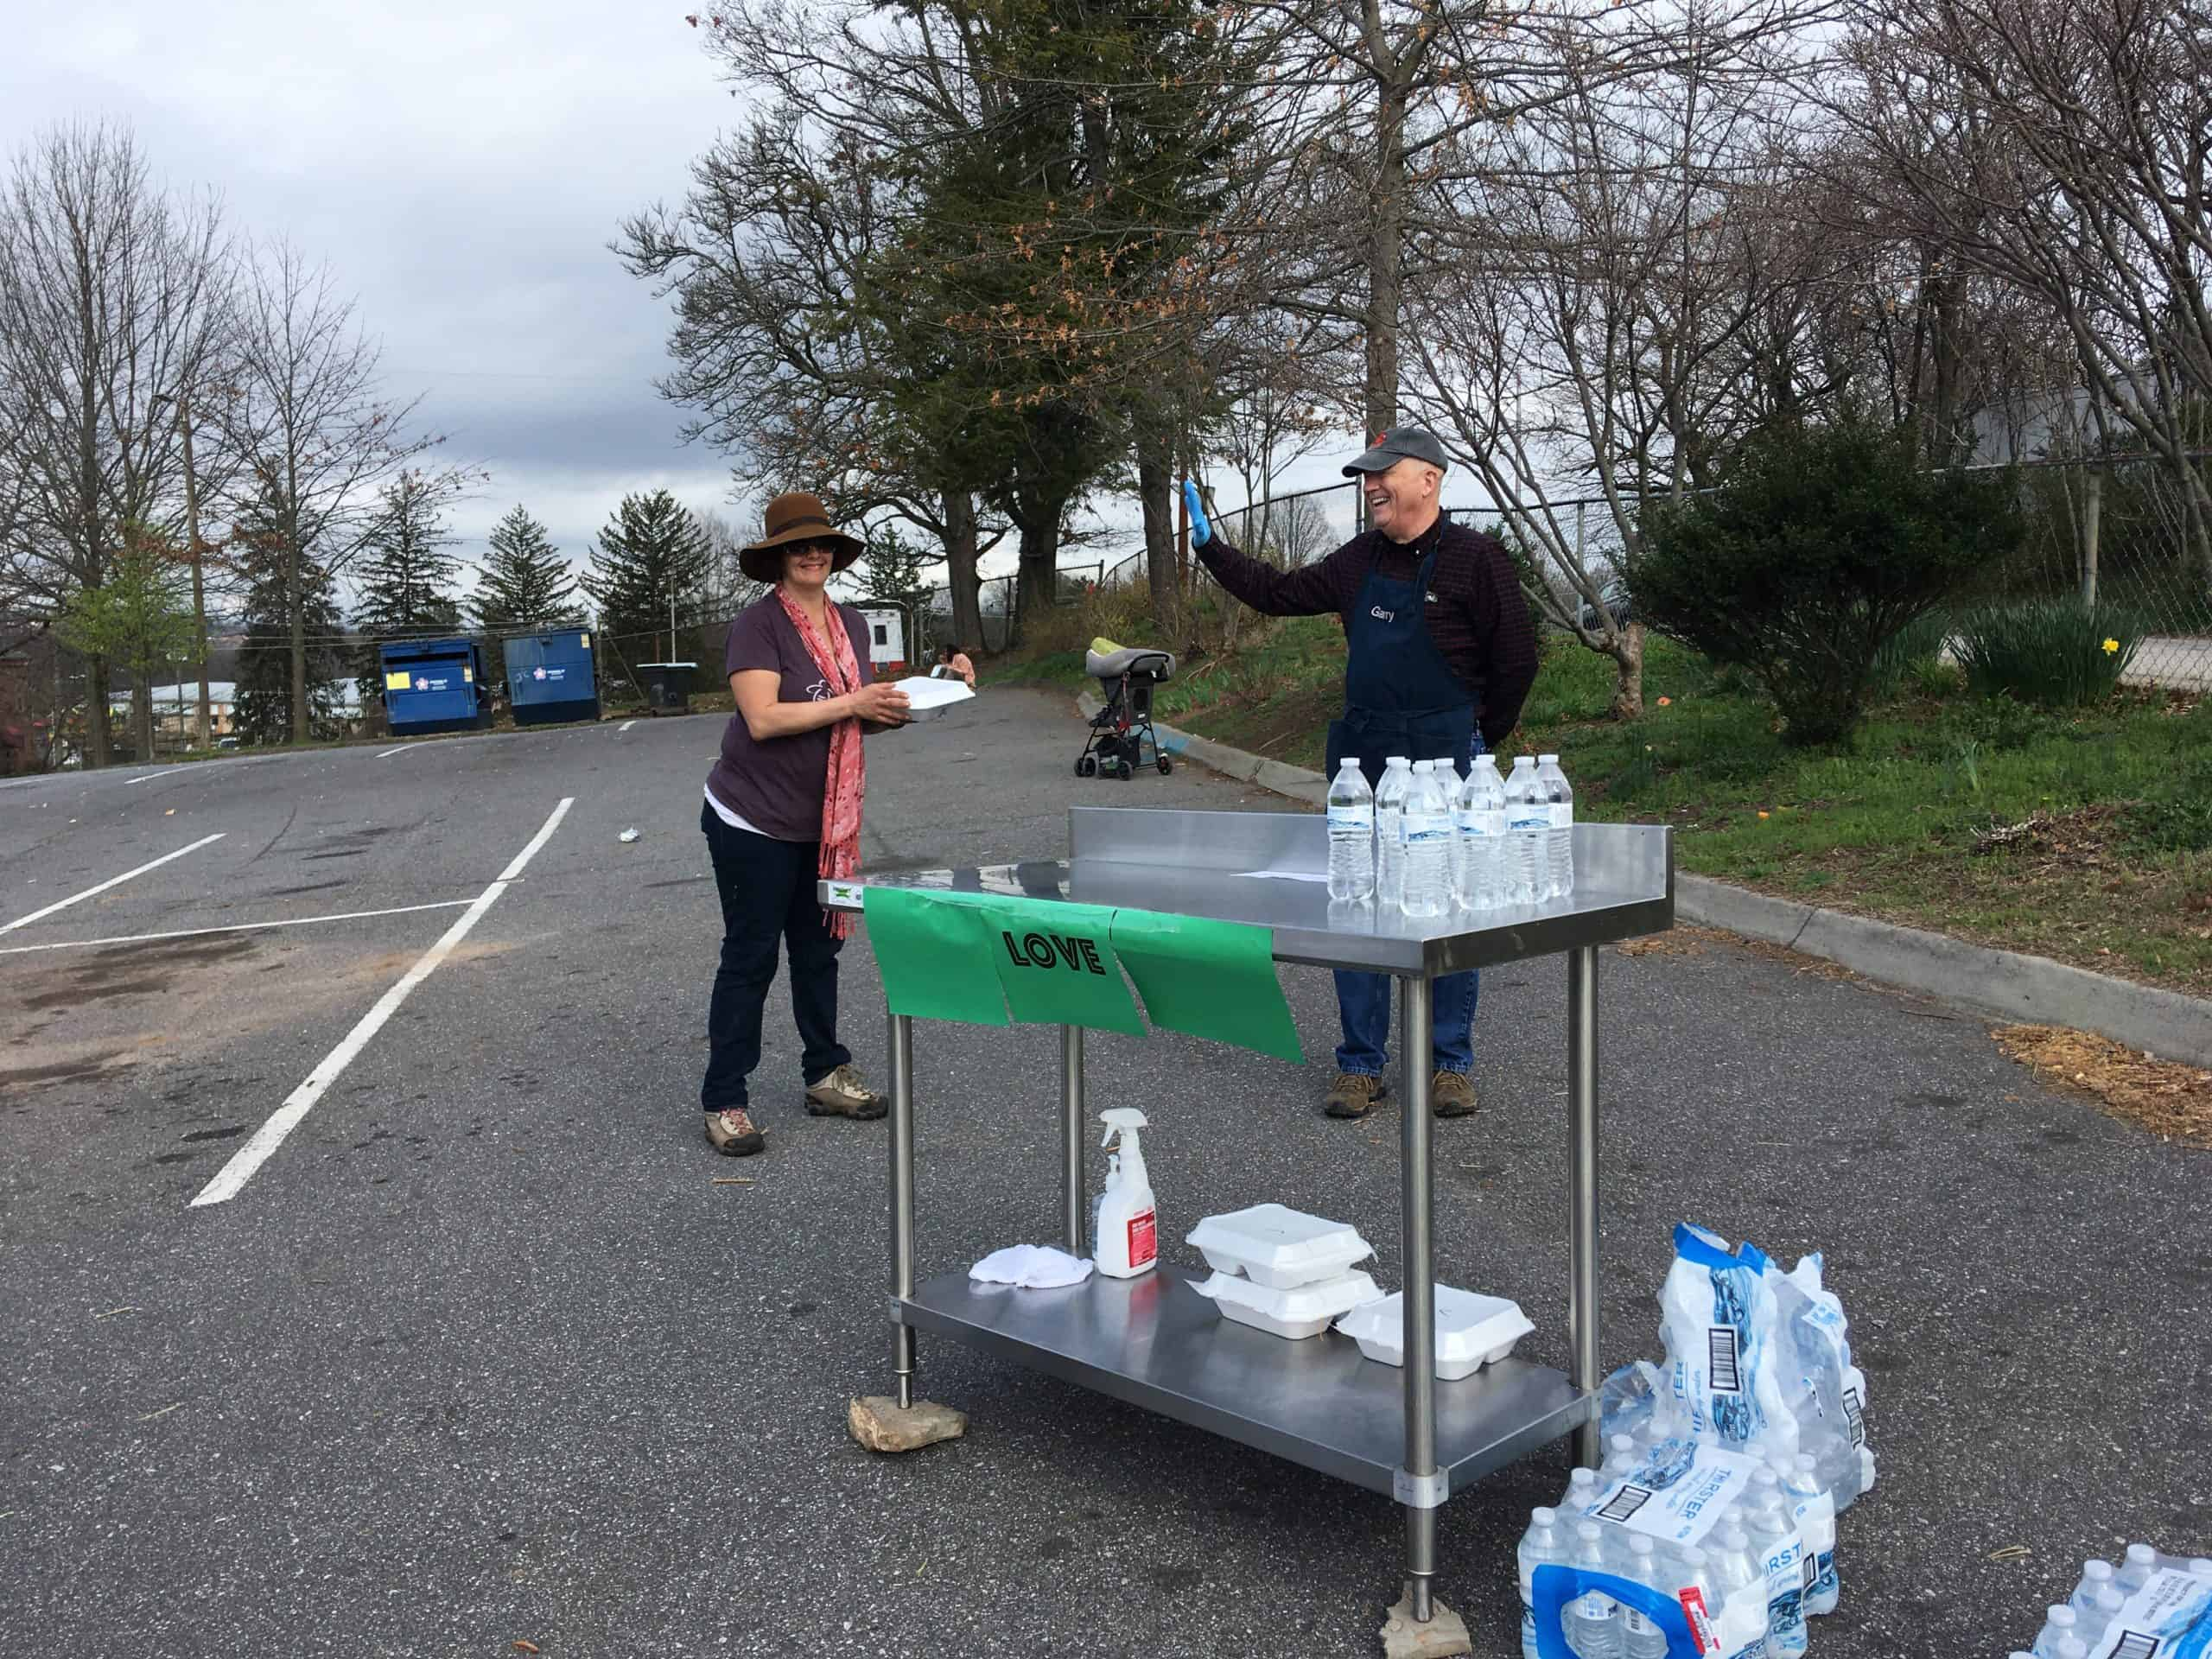 Volunteers at a water bottle station stand far apart at a parking lot to help with coronavirus social distancing while still serving meals to the homeless.